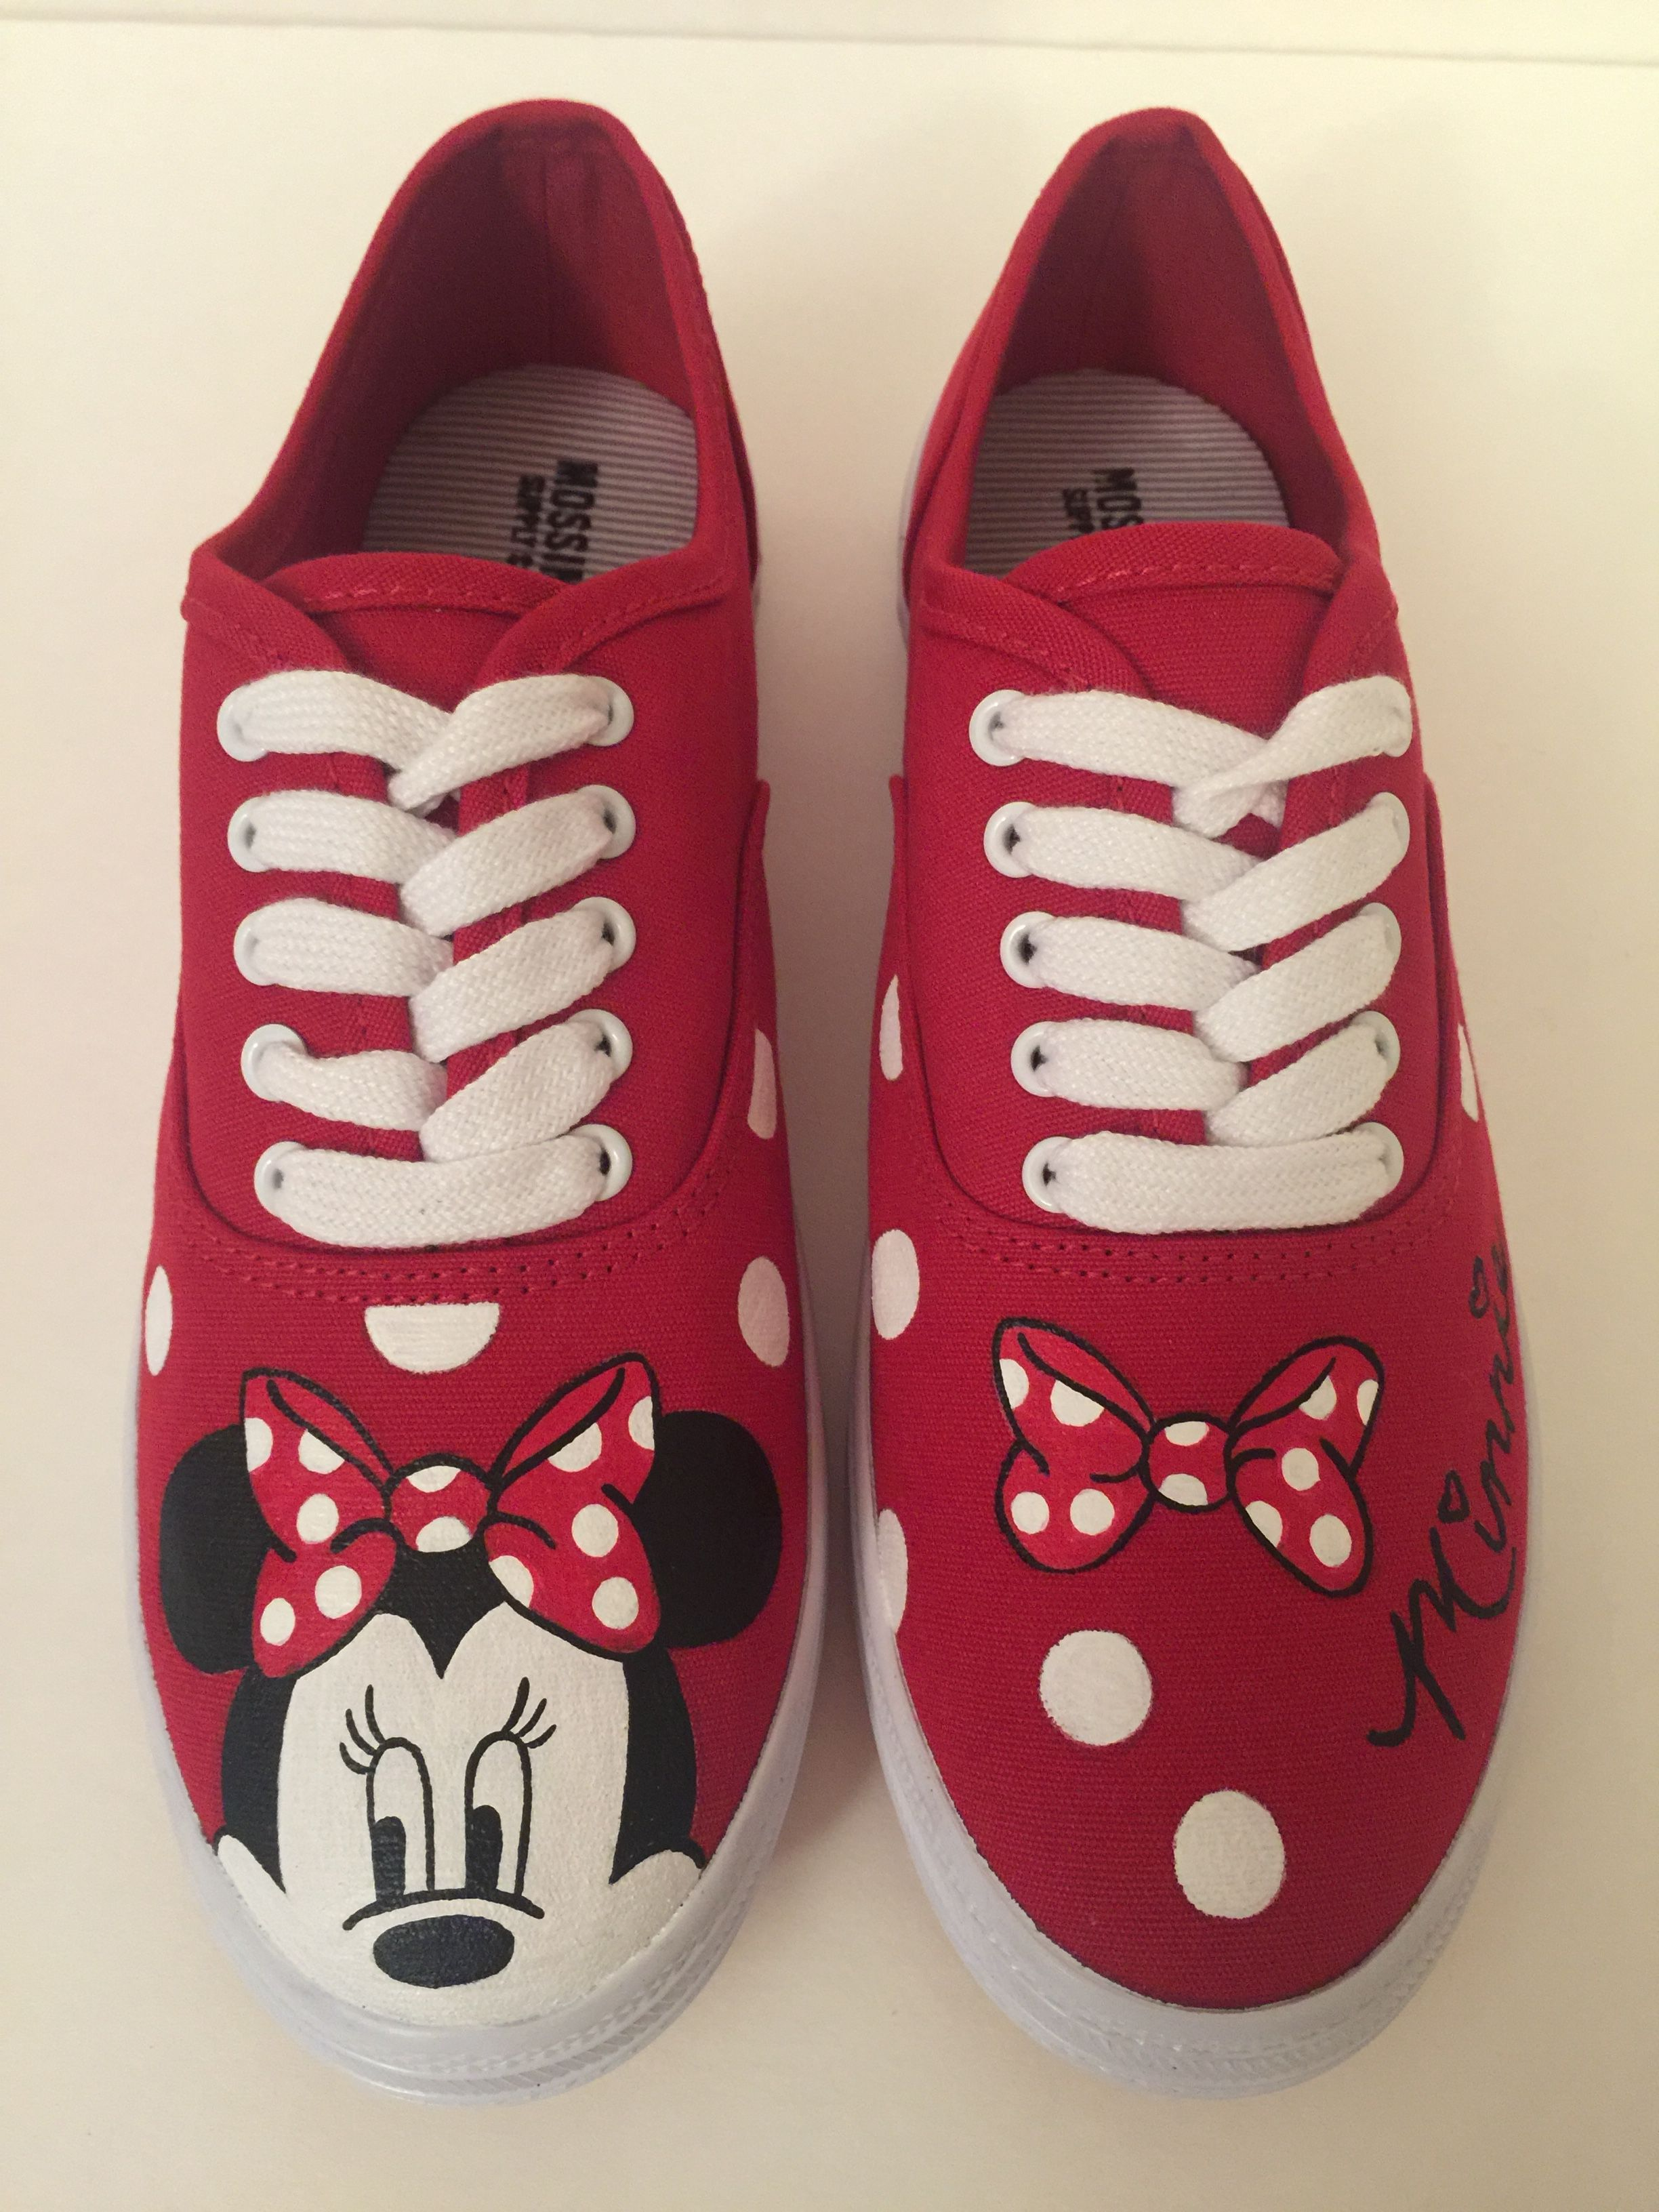 46++ Minnie mouse shoes womens ideas information